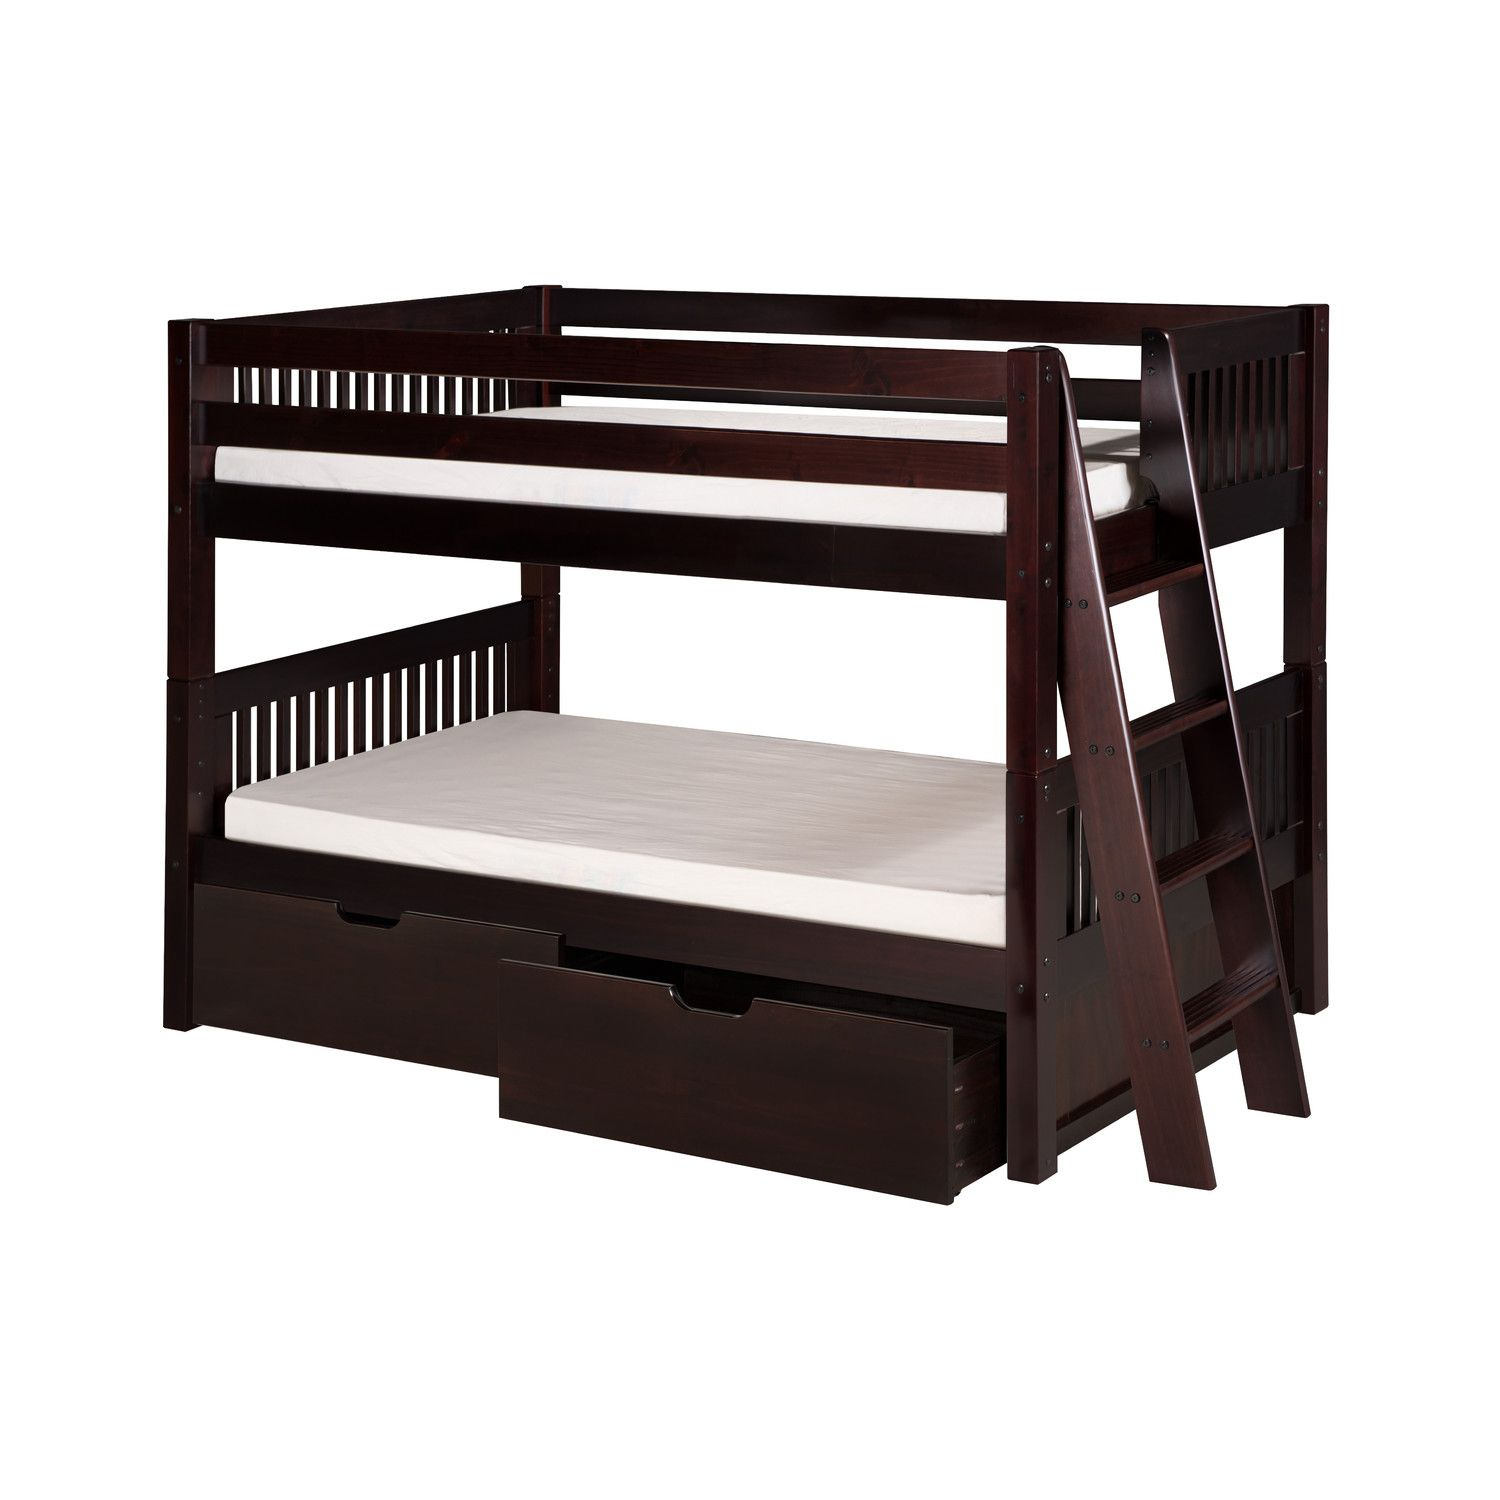 Twin loft bed craigslist  Camaflexi Low Bunk Bed with Lateral Angle Ladder and Drawers  Blast